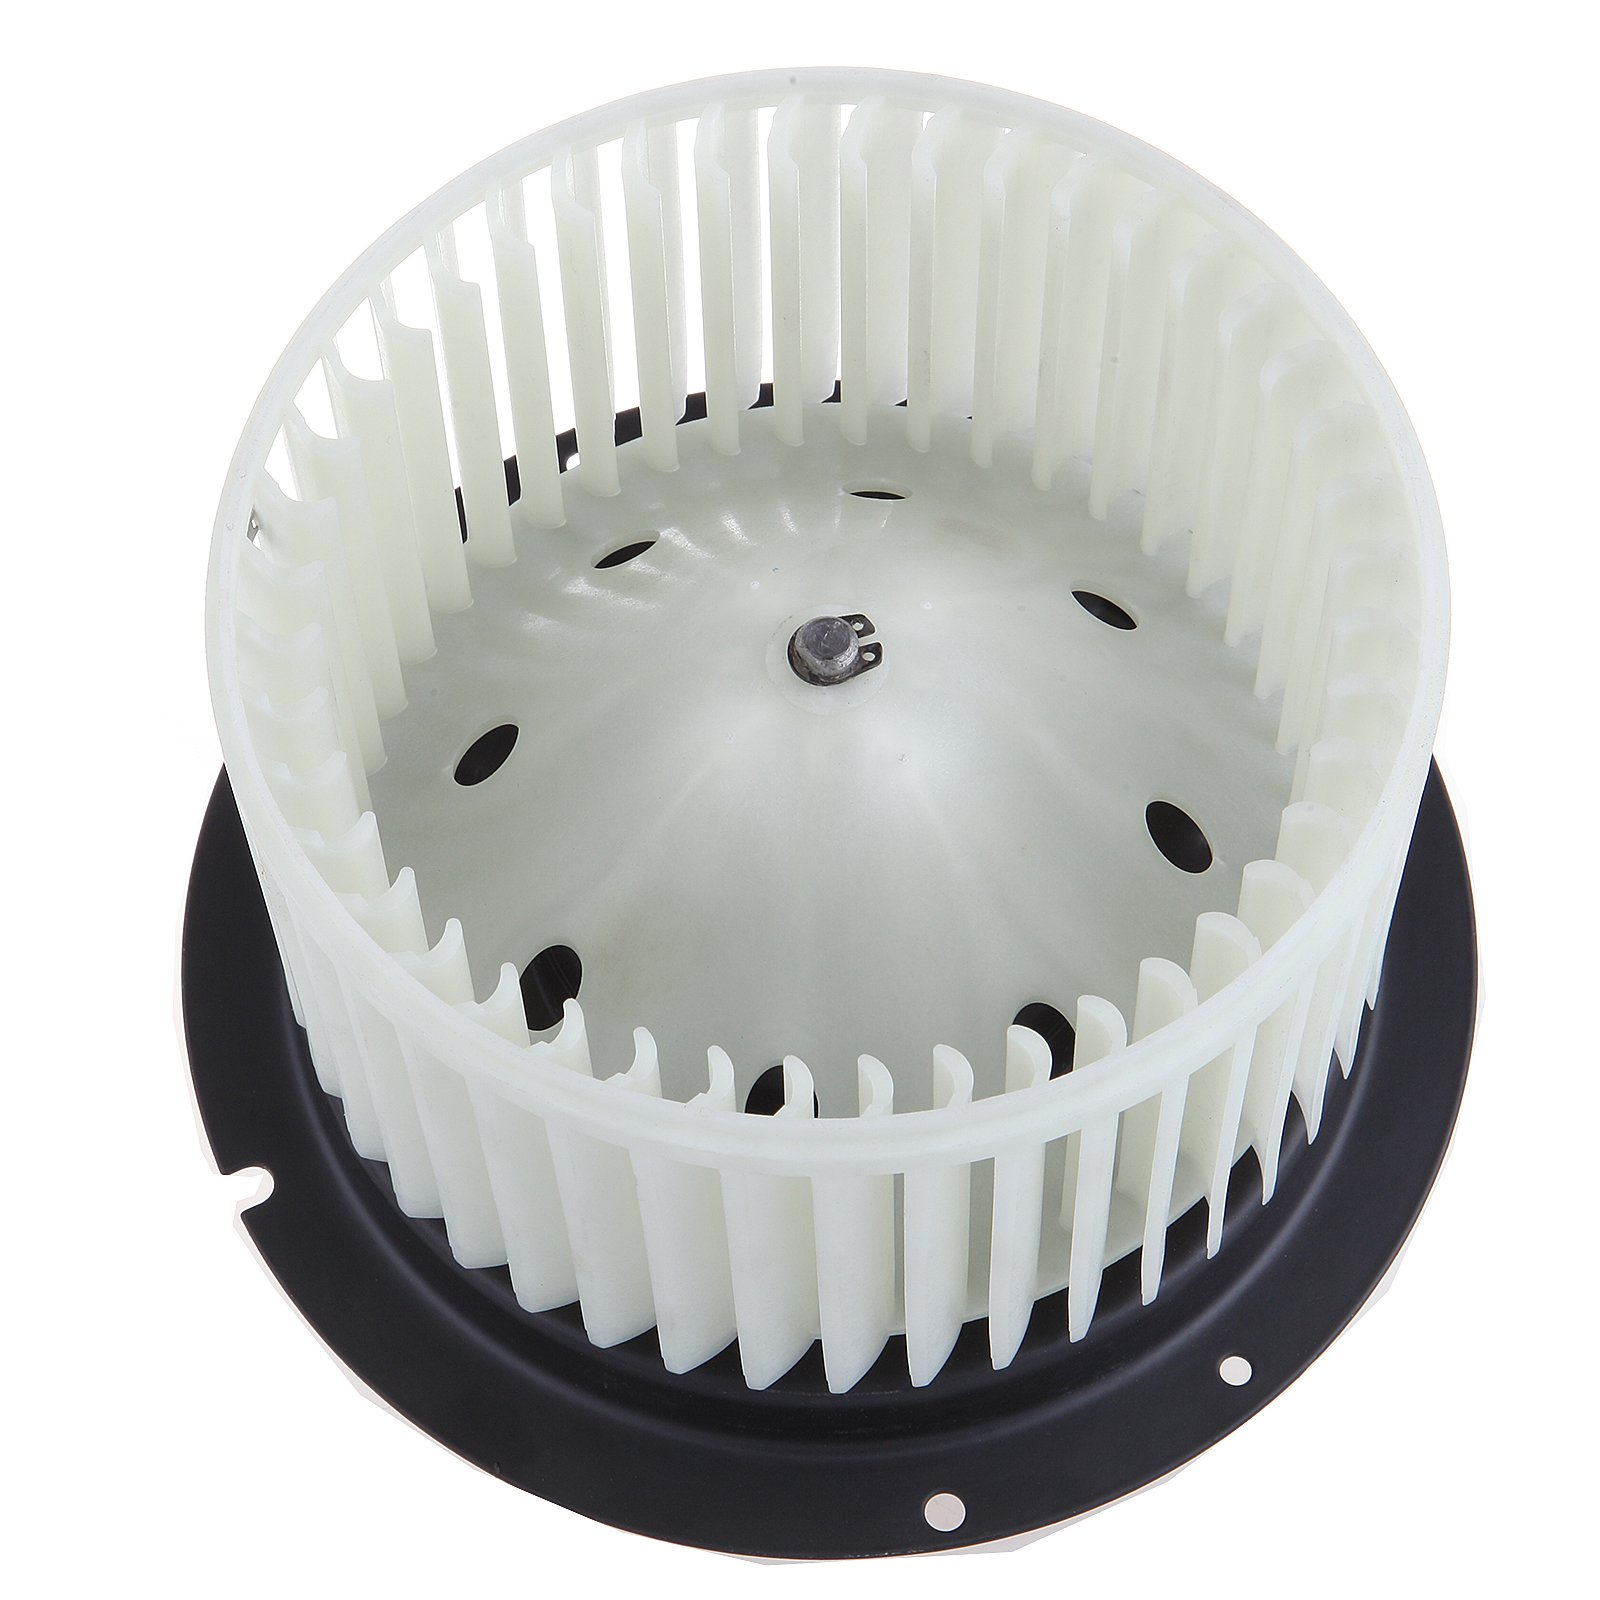 ABS plastic Heater Blower Motor w/ Fan Cage ECCPP for 2000-2005 Ford Excursion /1999-2007 Ford F250 /1999-2007 Ford F350 /1999-2003 Ford F450 Truck /1999-2003 Ford F550 Truck